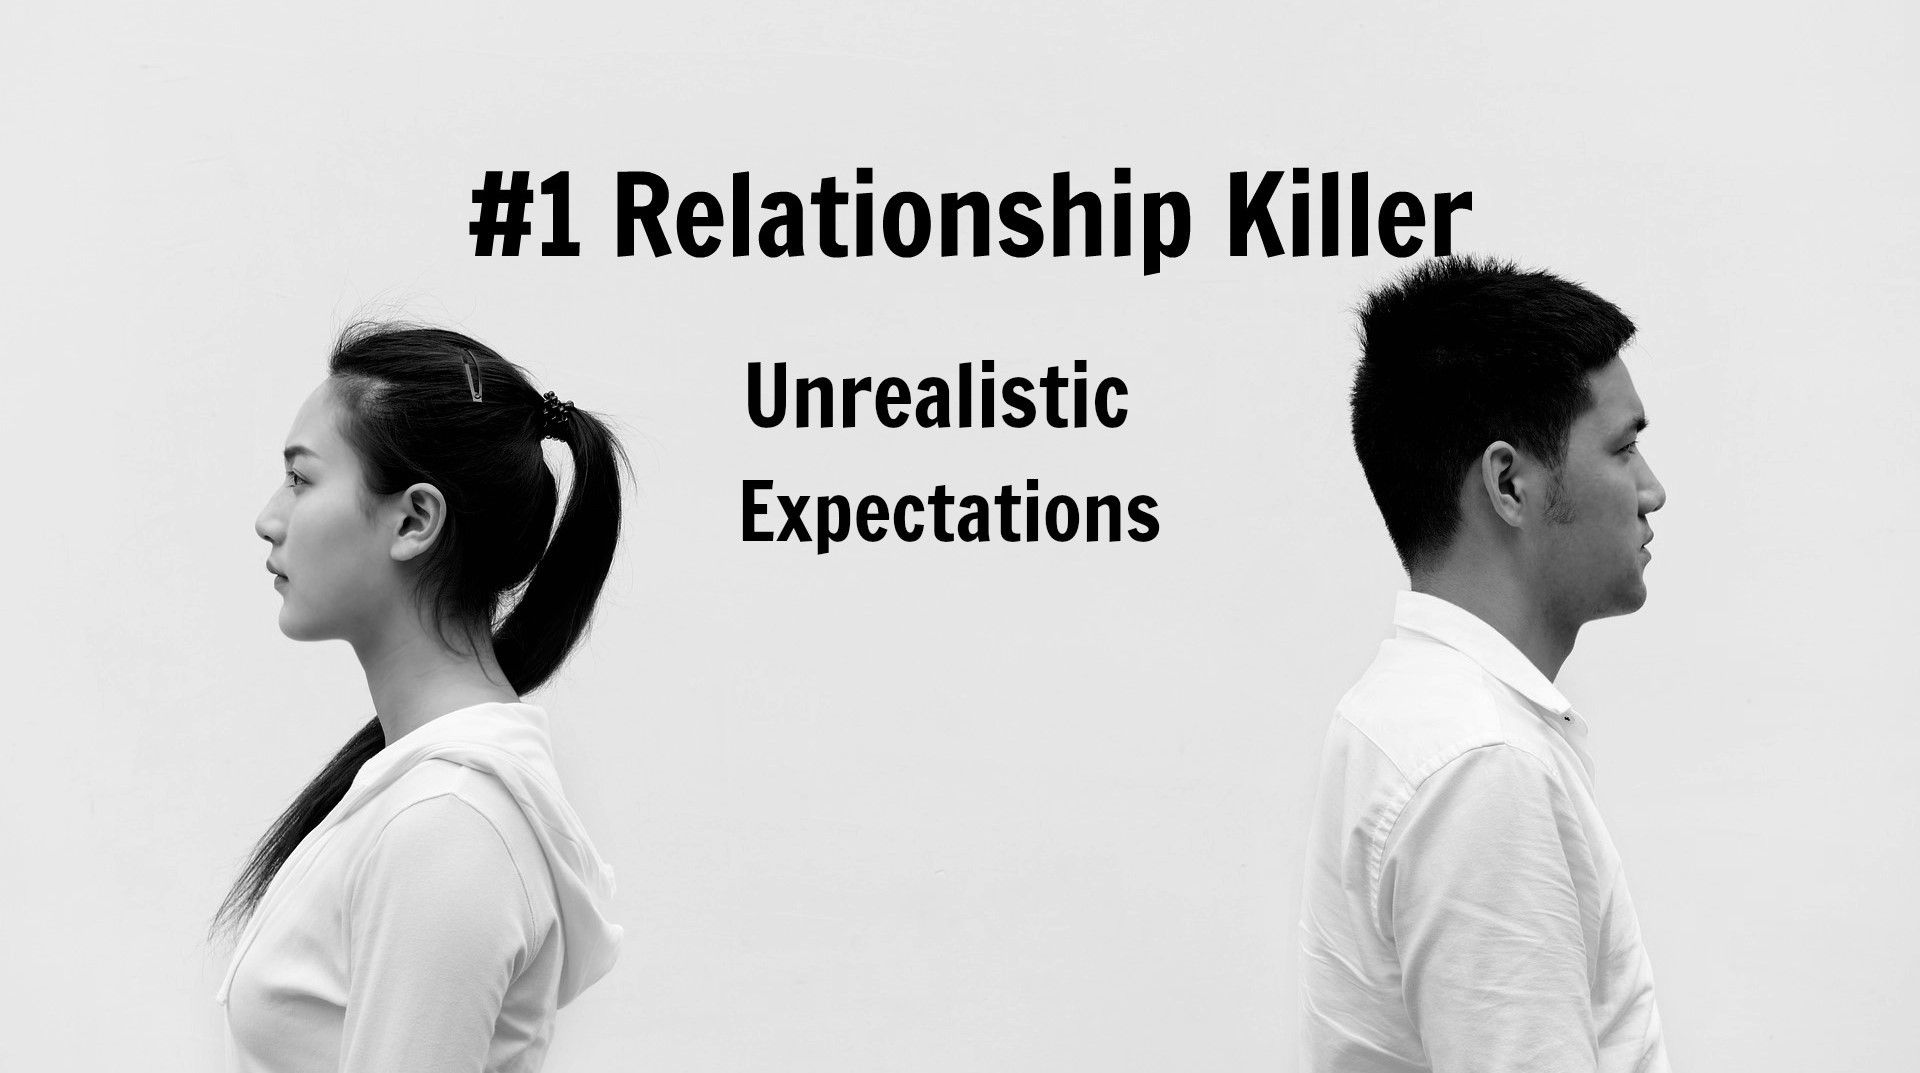 3. Expectations Increases With Love: